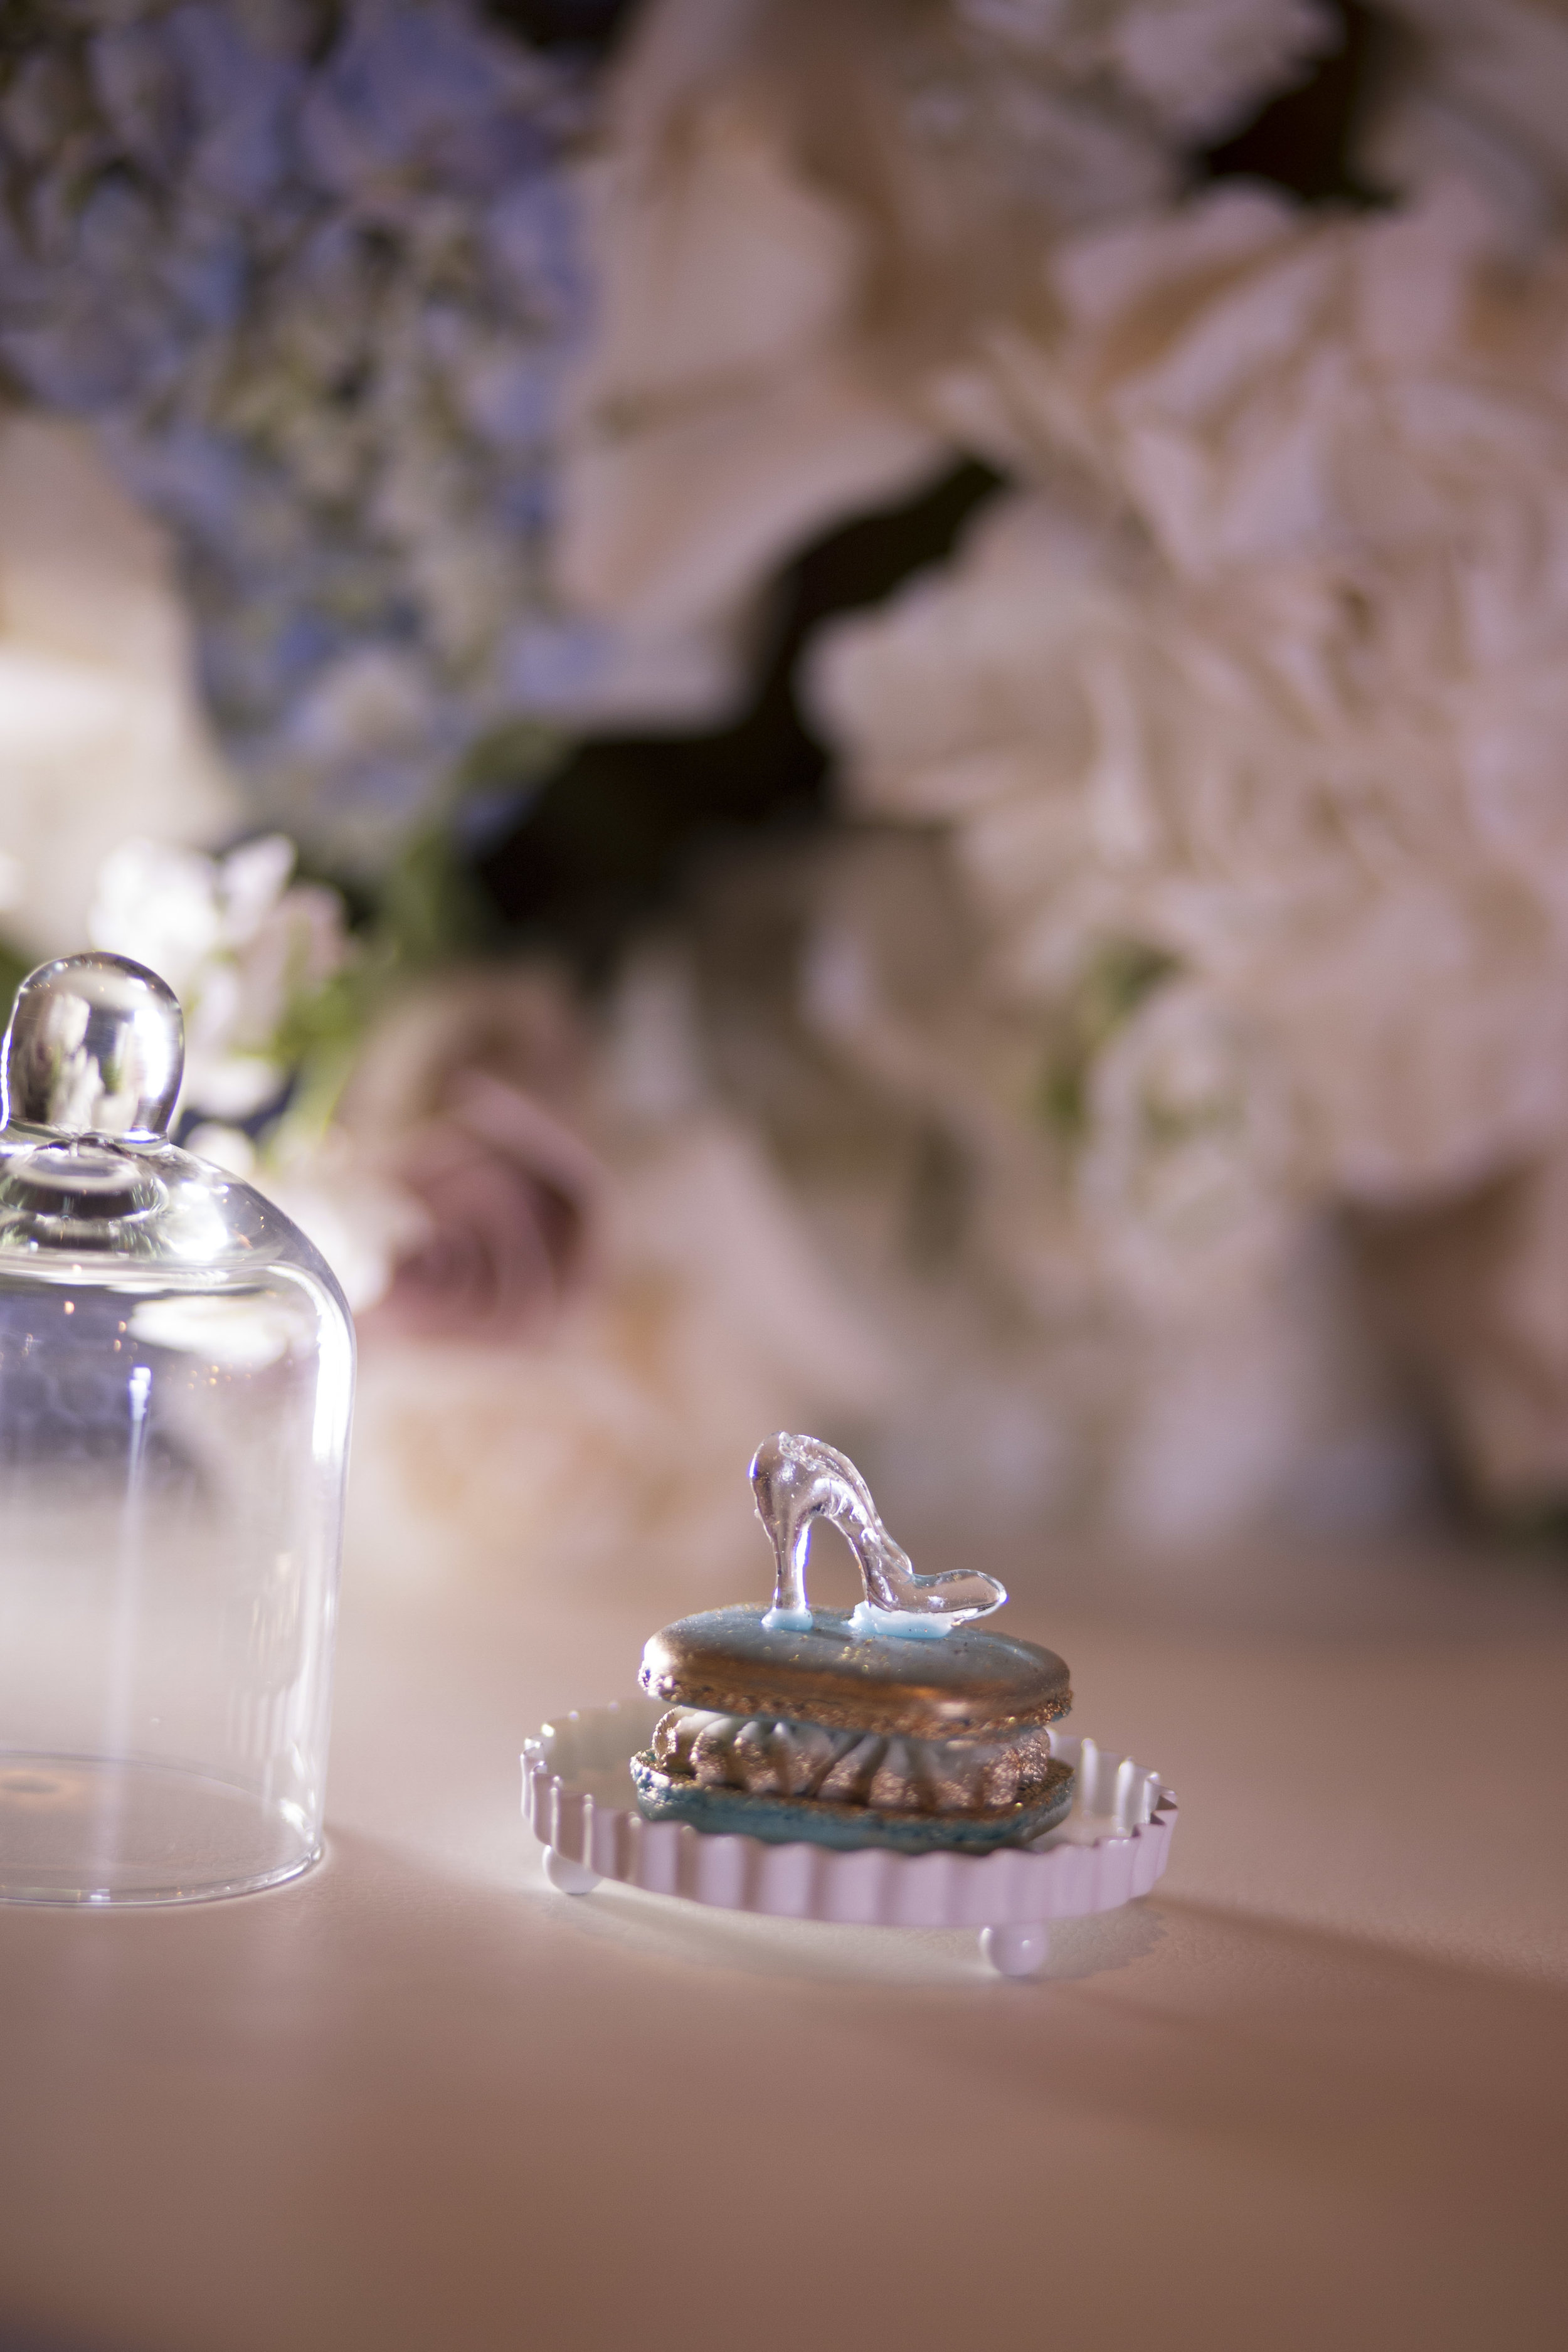 Sugar Favor - Each guests received a hand blown sugar glass slipped placed on a macaroon pillow and presented under glass for the perfect cinderella wedding. Luxury Las Vegas Wedding Planner Andrea Eppolito. Image by AltF Photography.  Luxury Las Vegas Wedding Planner Andrea Eppolito. Image by AltF Photography.